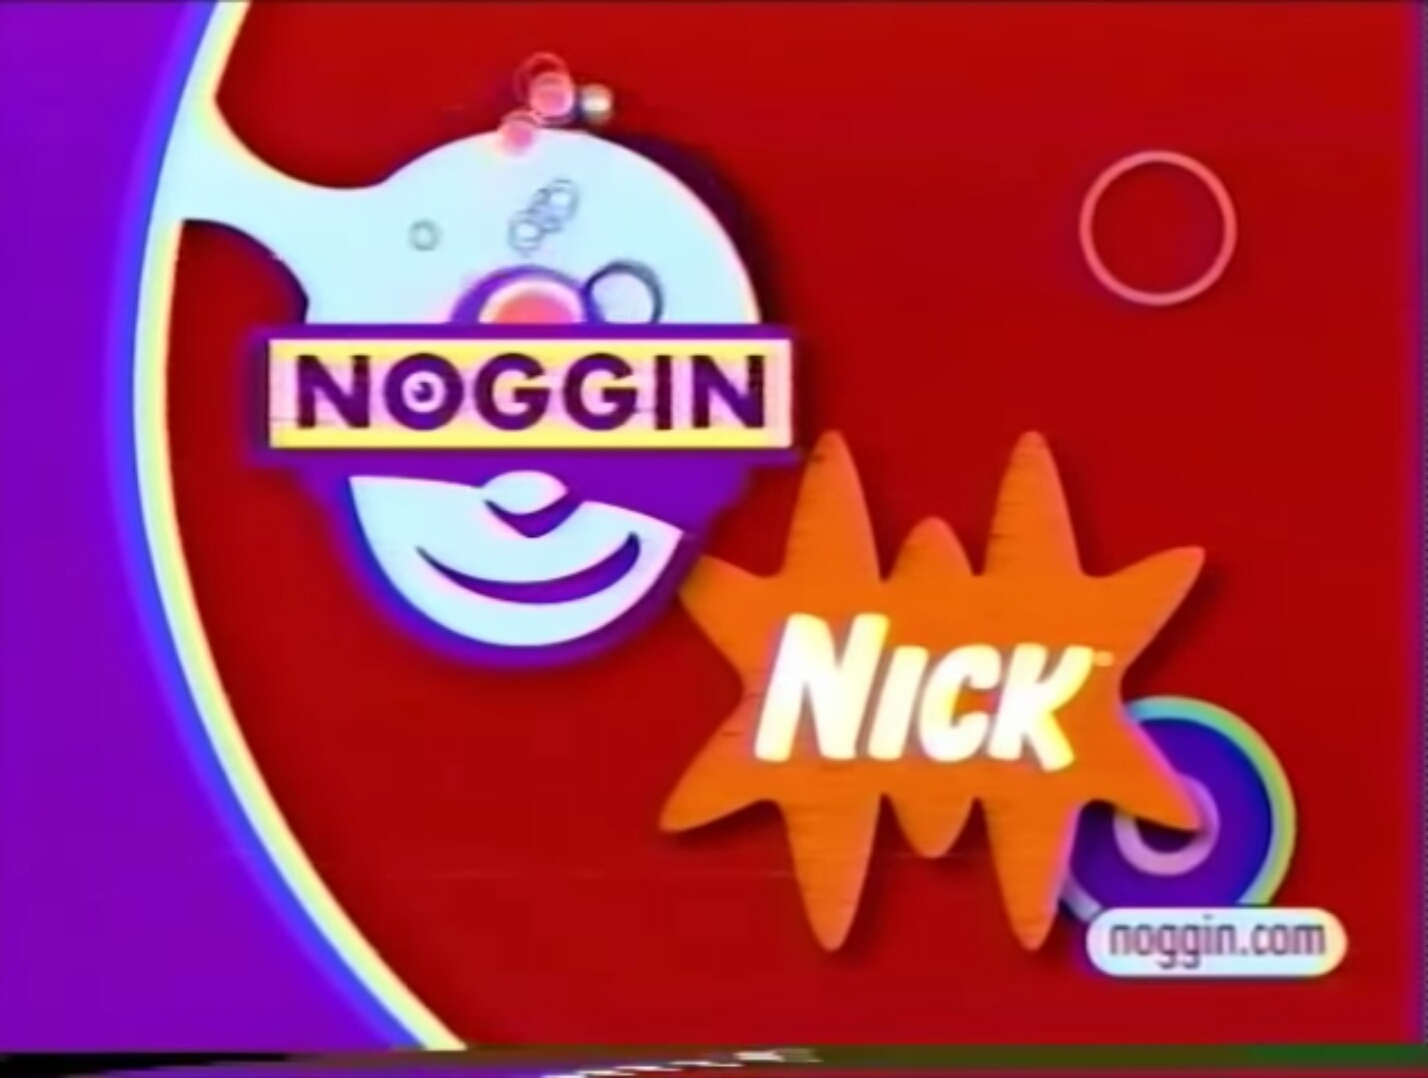 Noggin on Nick